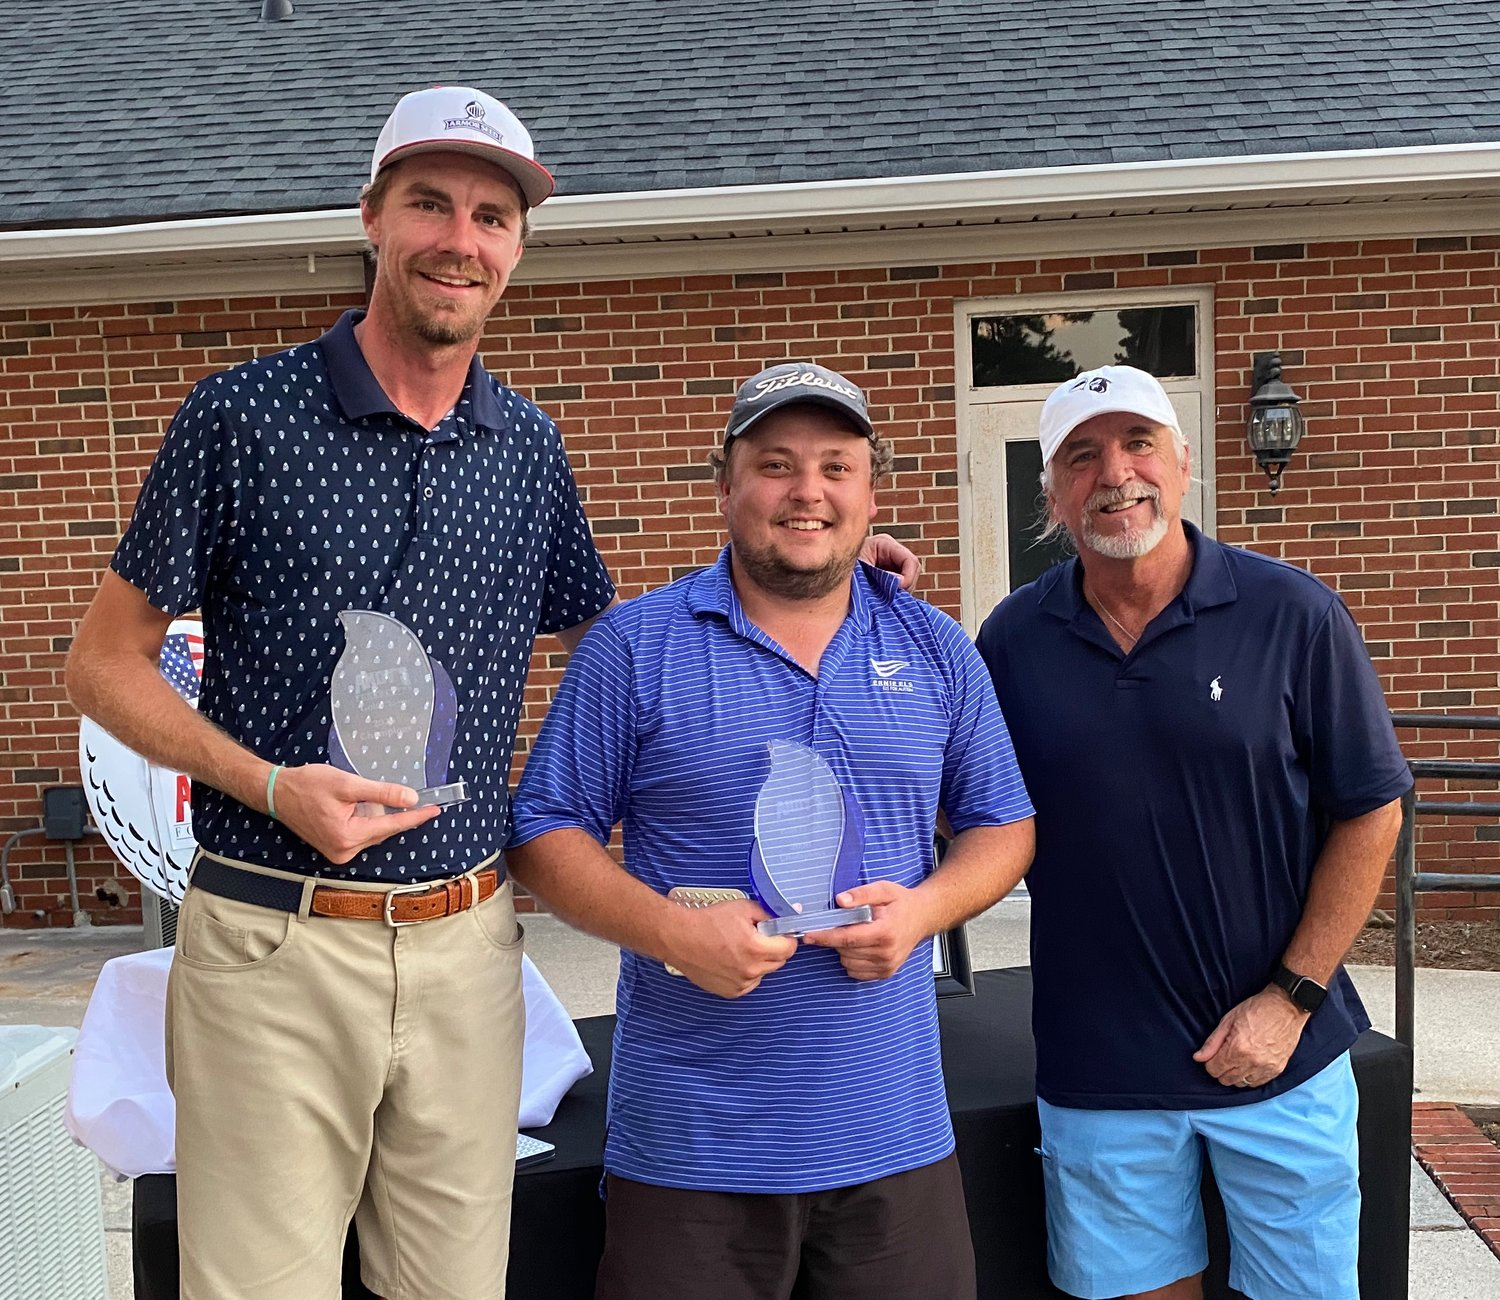 Eric Williams (left) and Will Caughron (right) claimed the 2020 Andy's Foundation Golf Classic title in a one-hole playoff at Southern Wayne Country Club on Sunday evening. Standing with Williams and Caughron is Kenney Moore, founder and CEO of Highway 55 Burgers, Shakes and Fries.